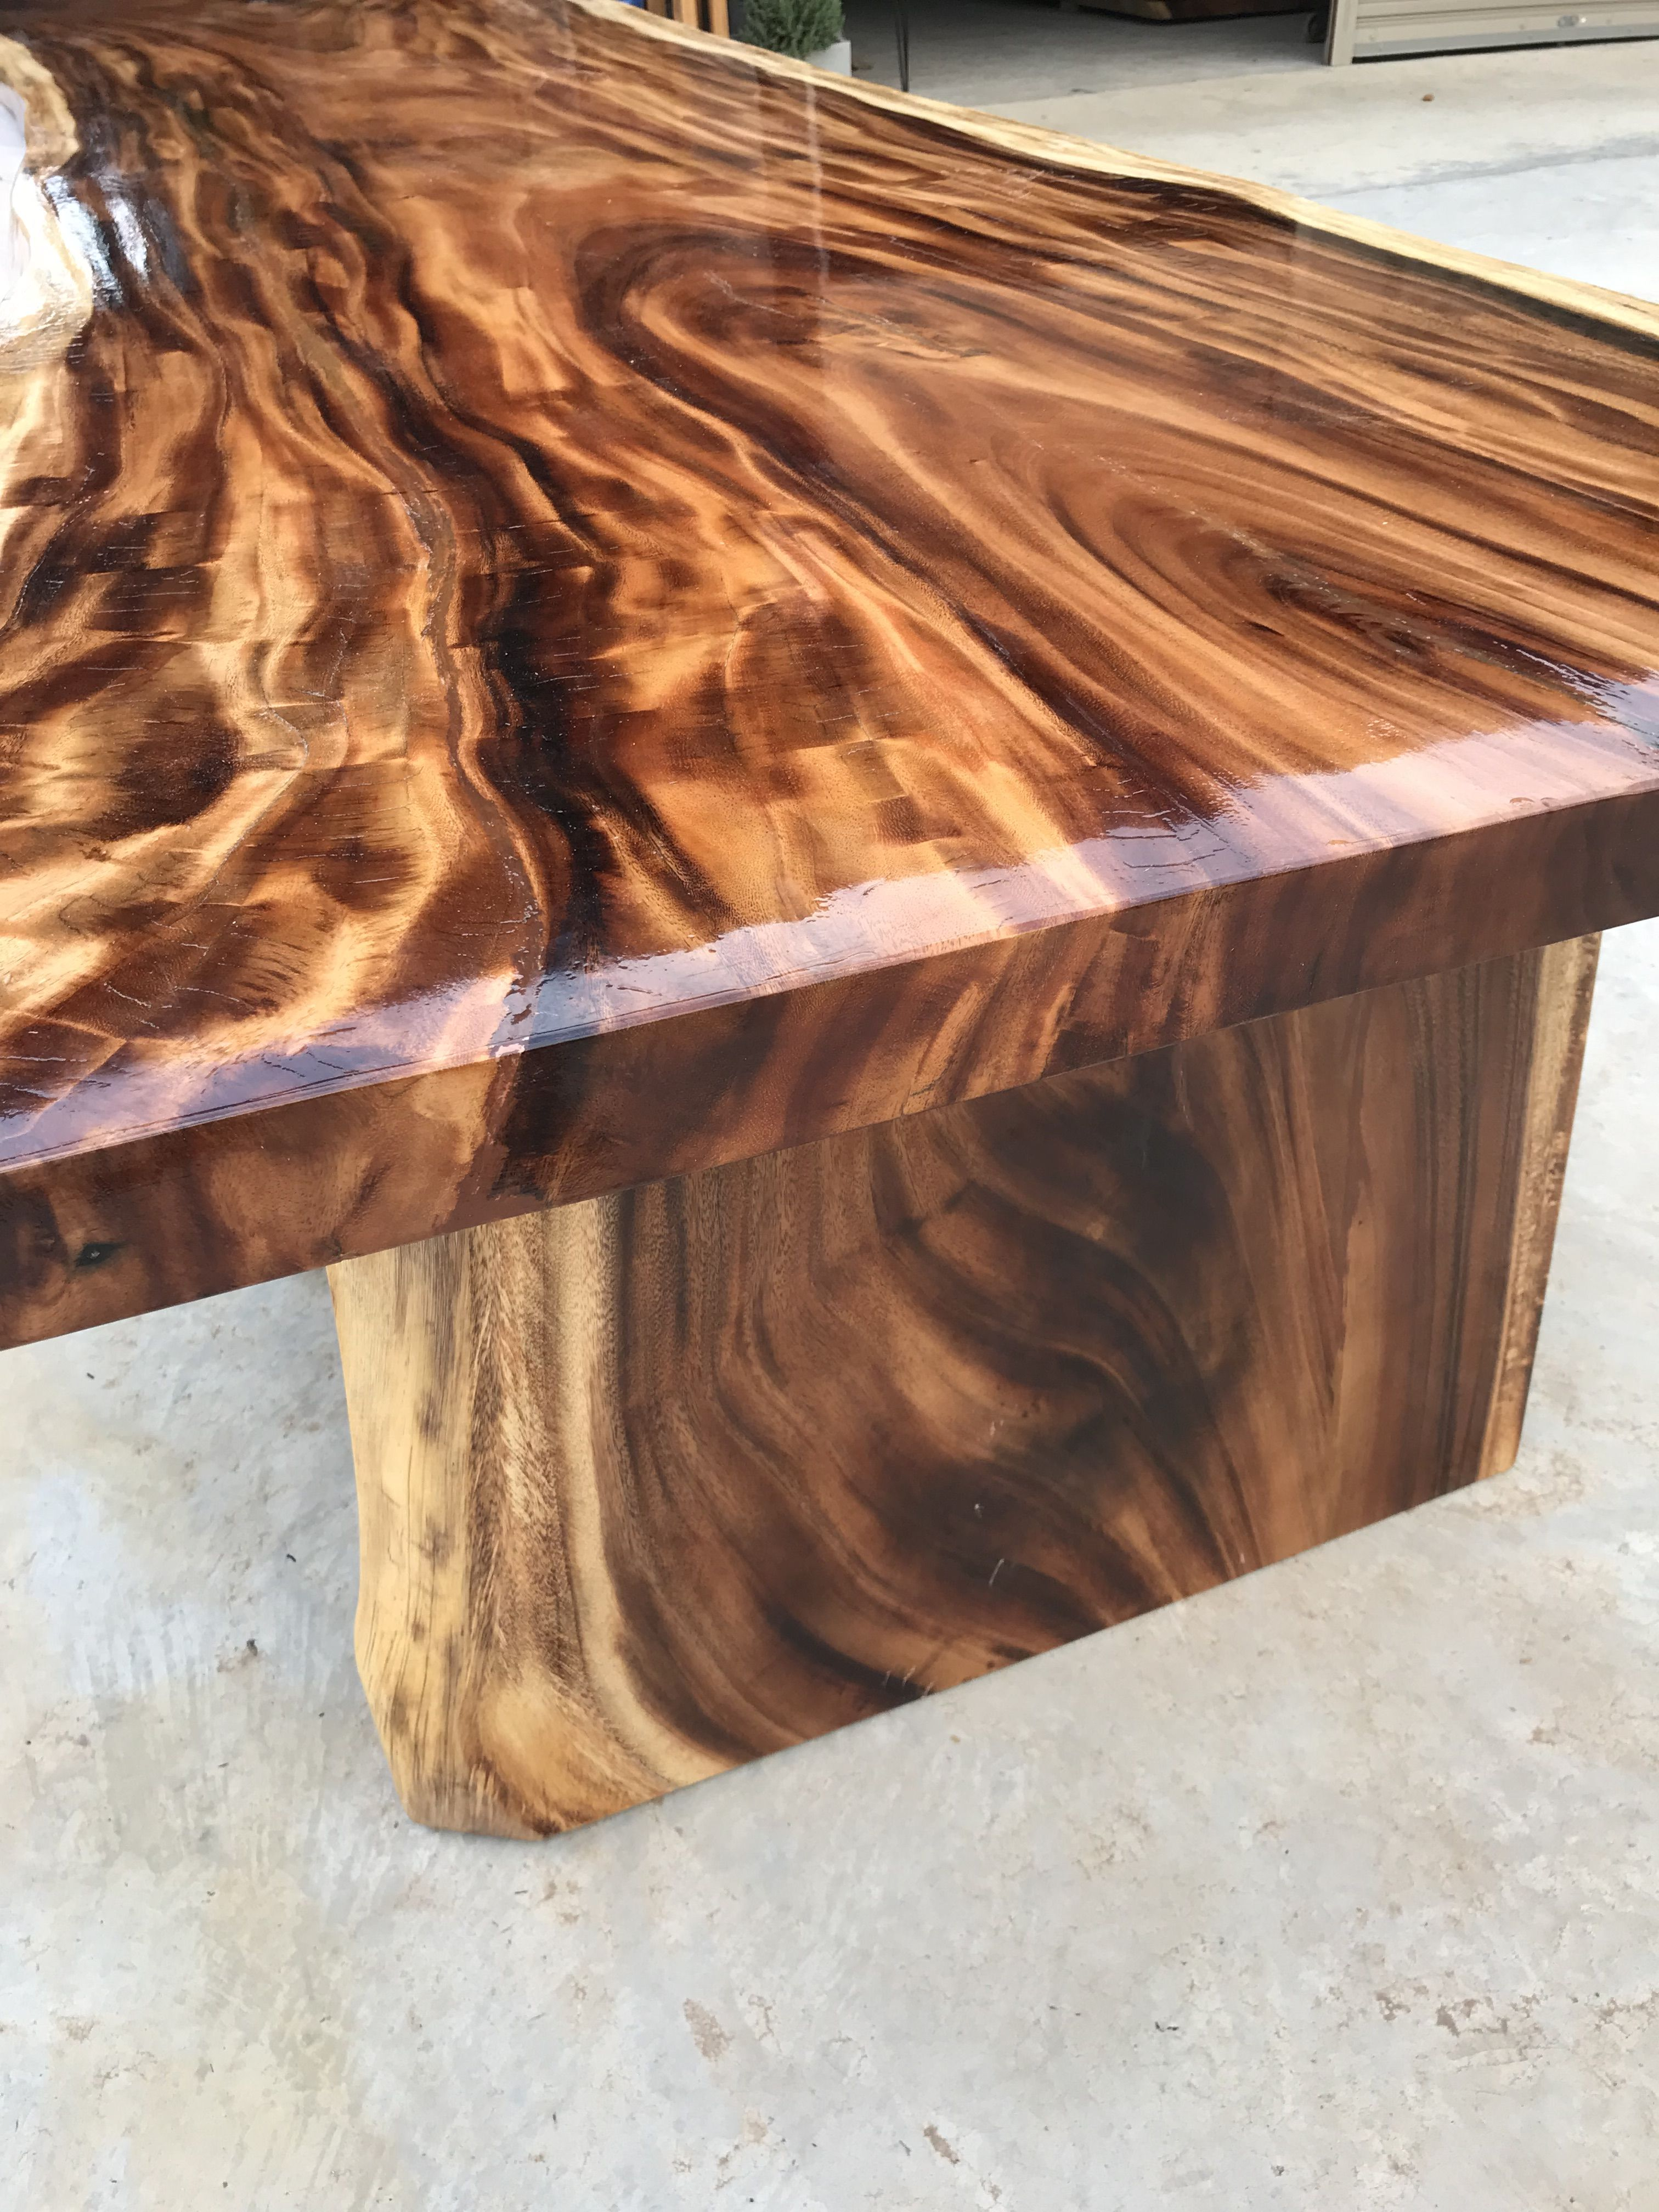 This Is A 14 5ft Large Live Edge Solid Acacia Wood Slab Dining Table We Are Now Creating For A Client Live Edge Wood Table Rustic Wood Projects Wood Decor